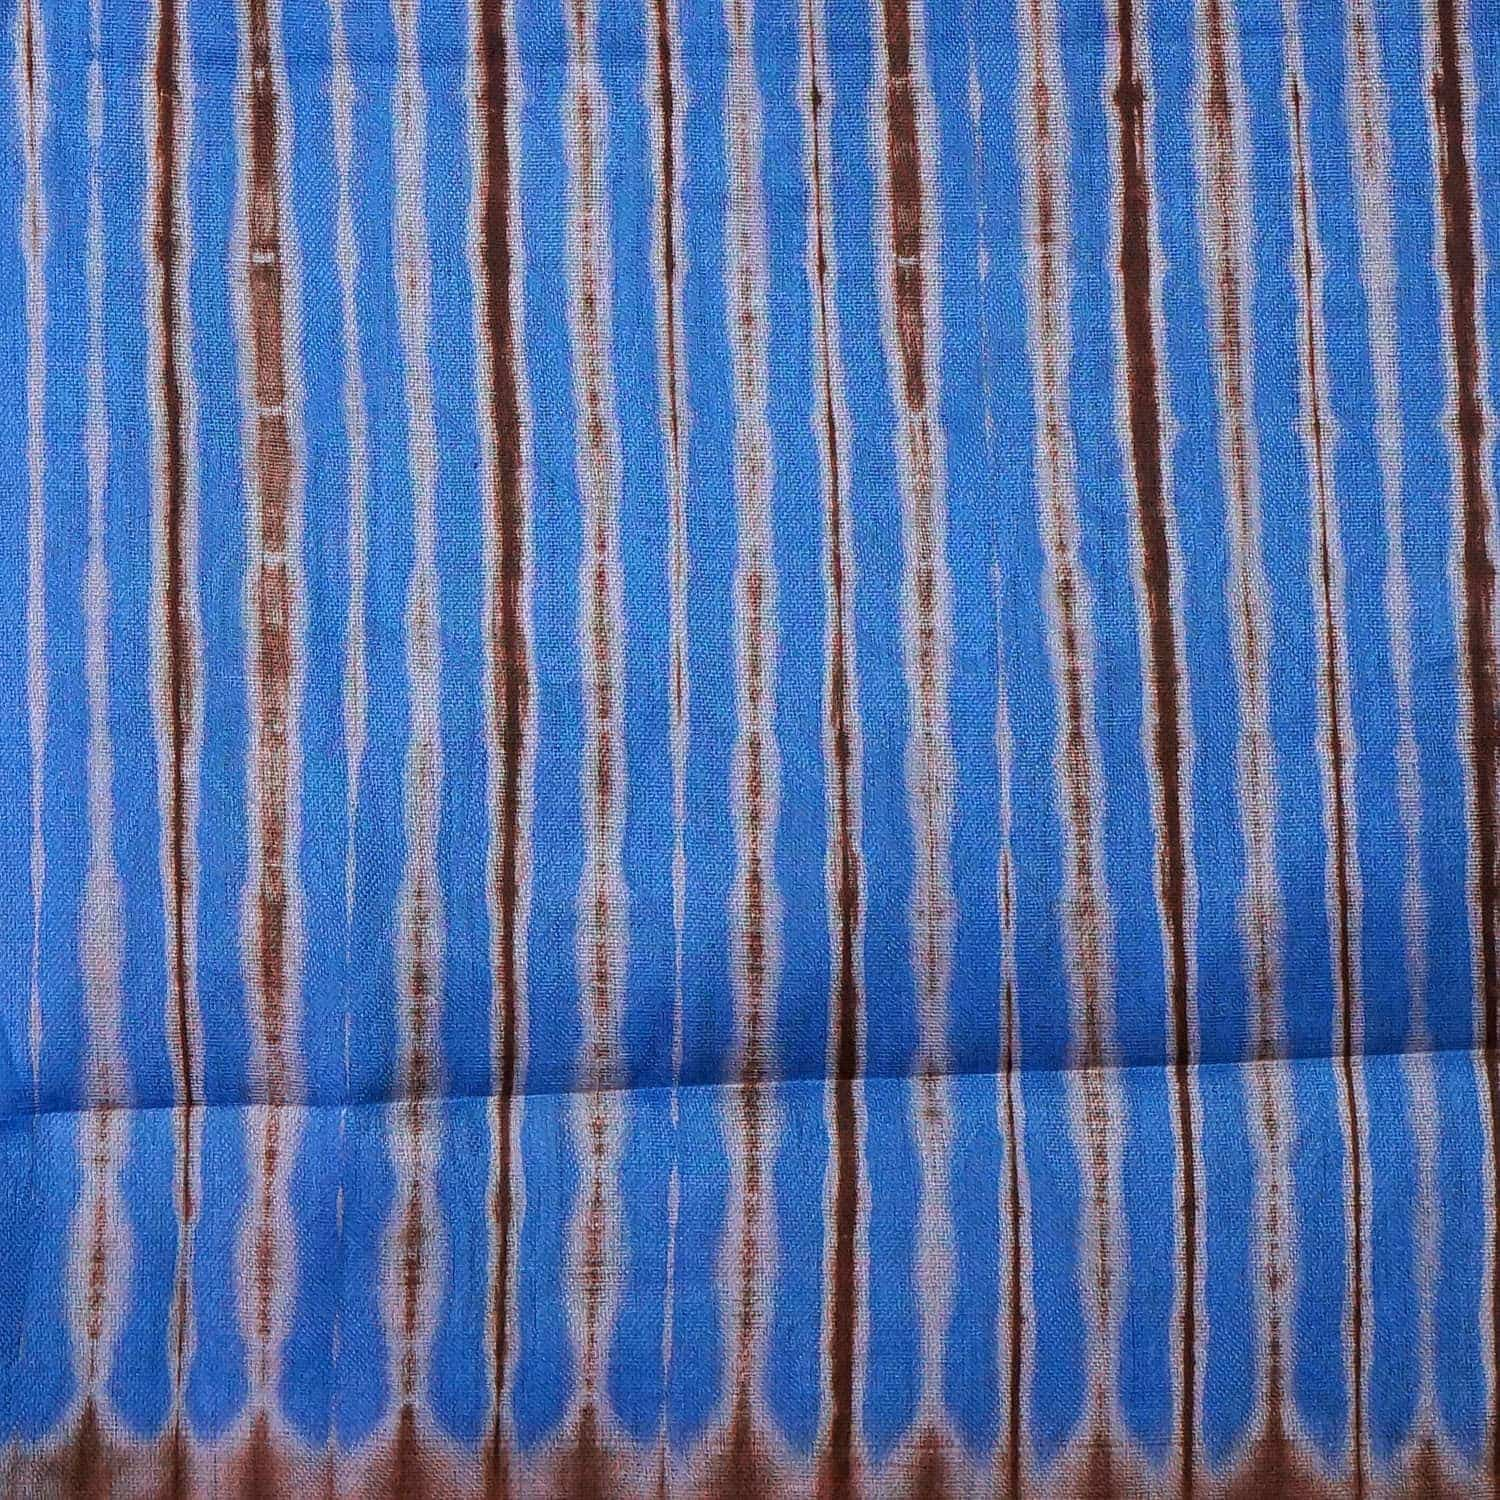 tissu africain en bazin bleu gris et brun motif toffe africouleur. Black Bedroom Furniture Sets. Home Design Ideas